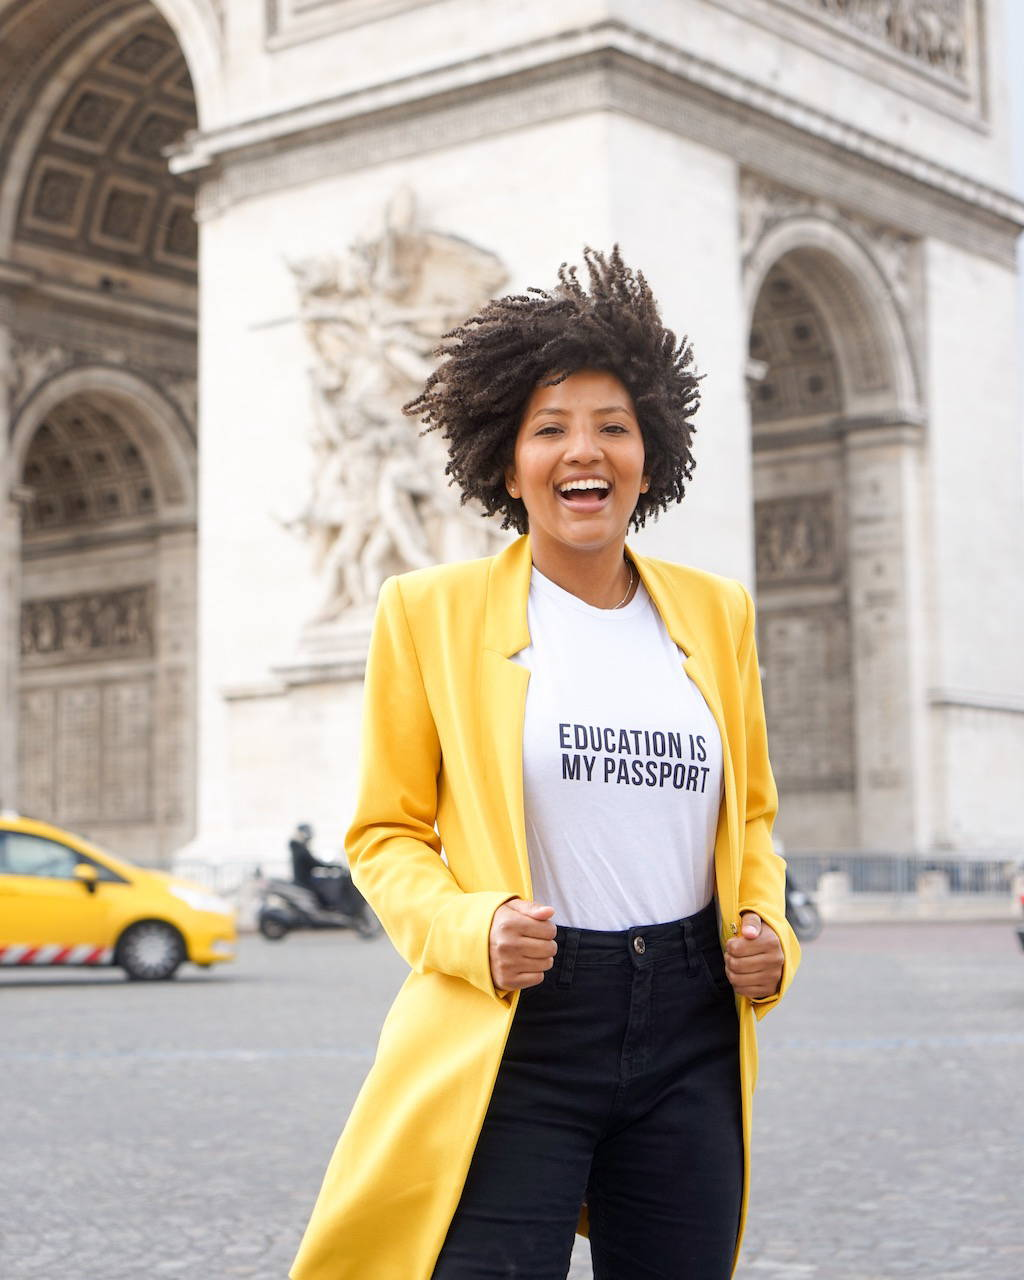 Thamara for The Blank Project wearing Education is my Passport white Tee in Paris